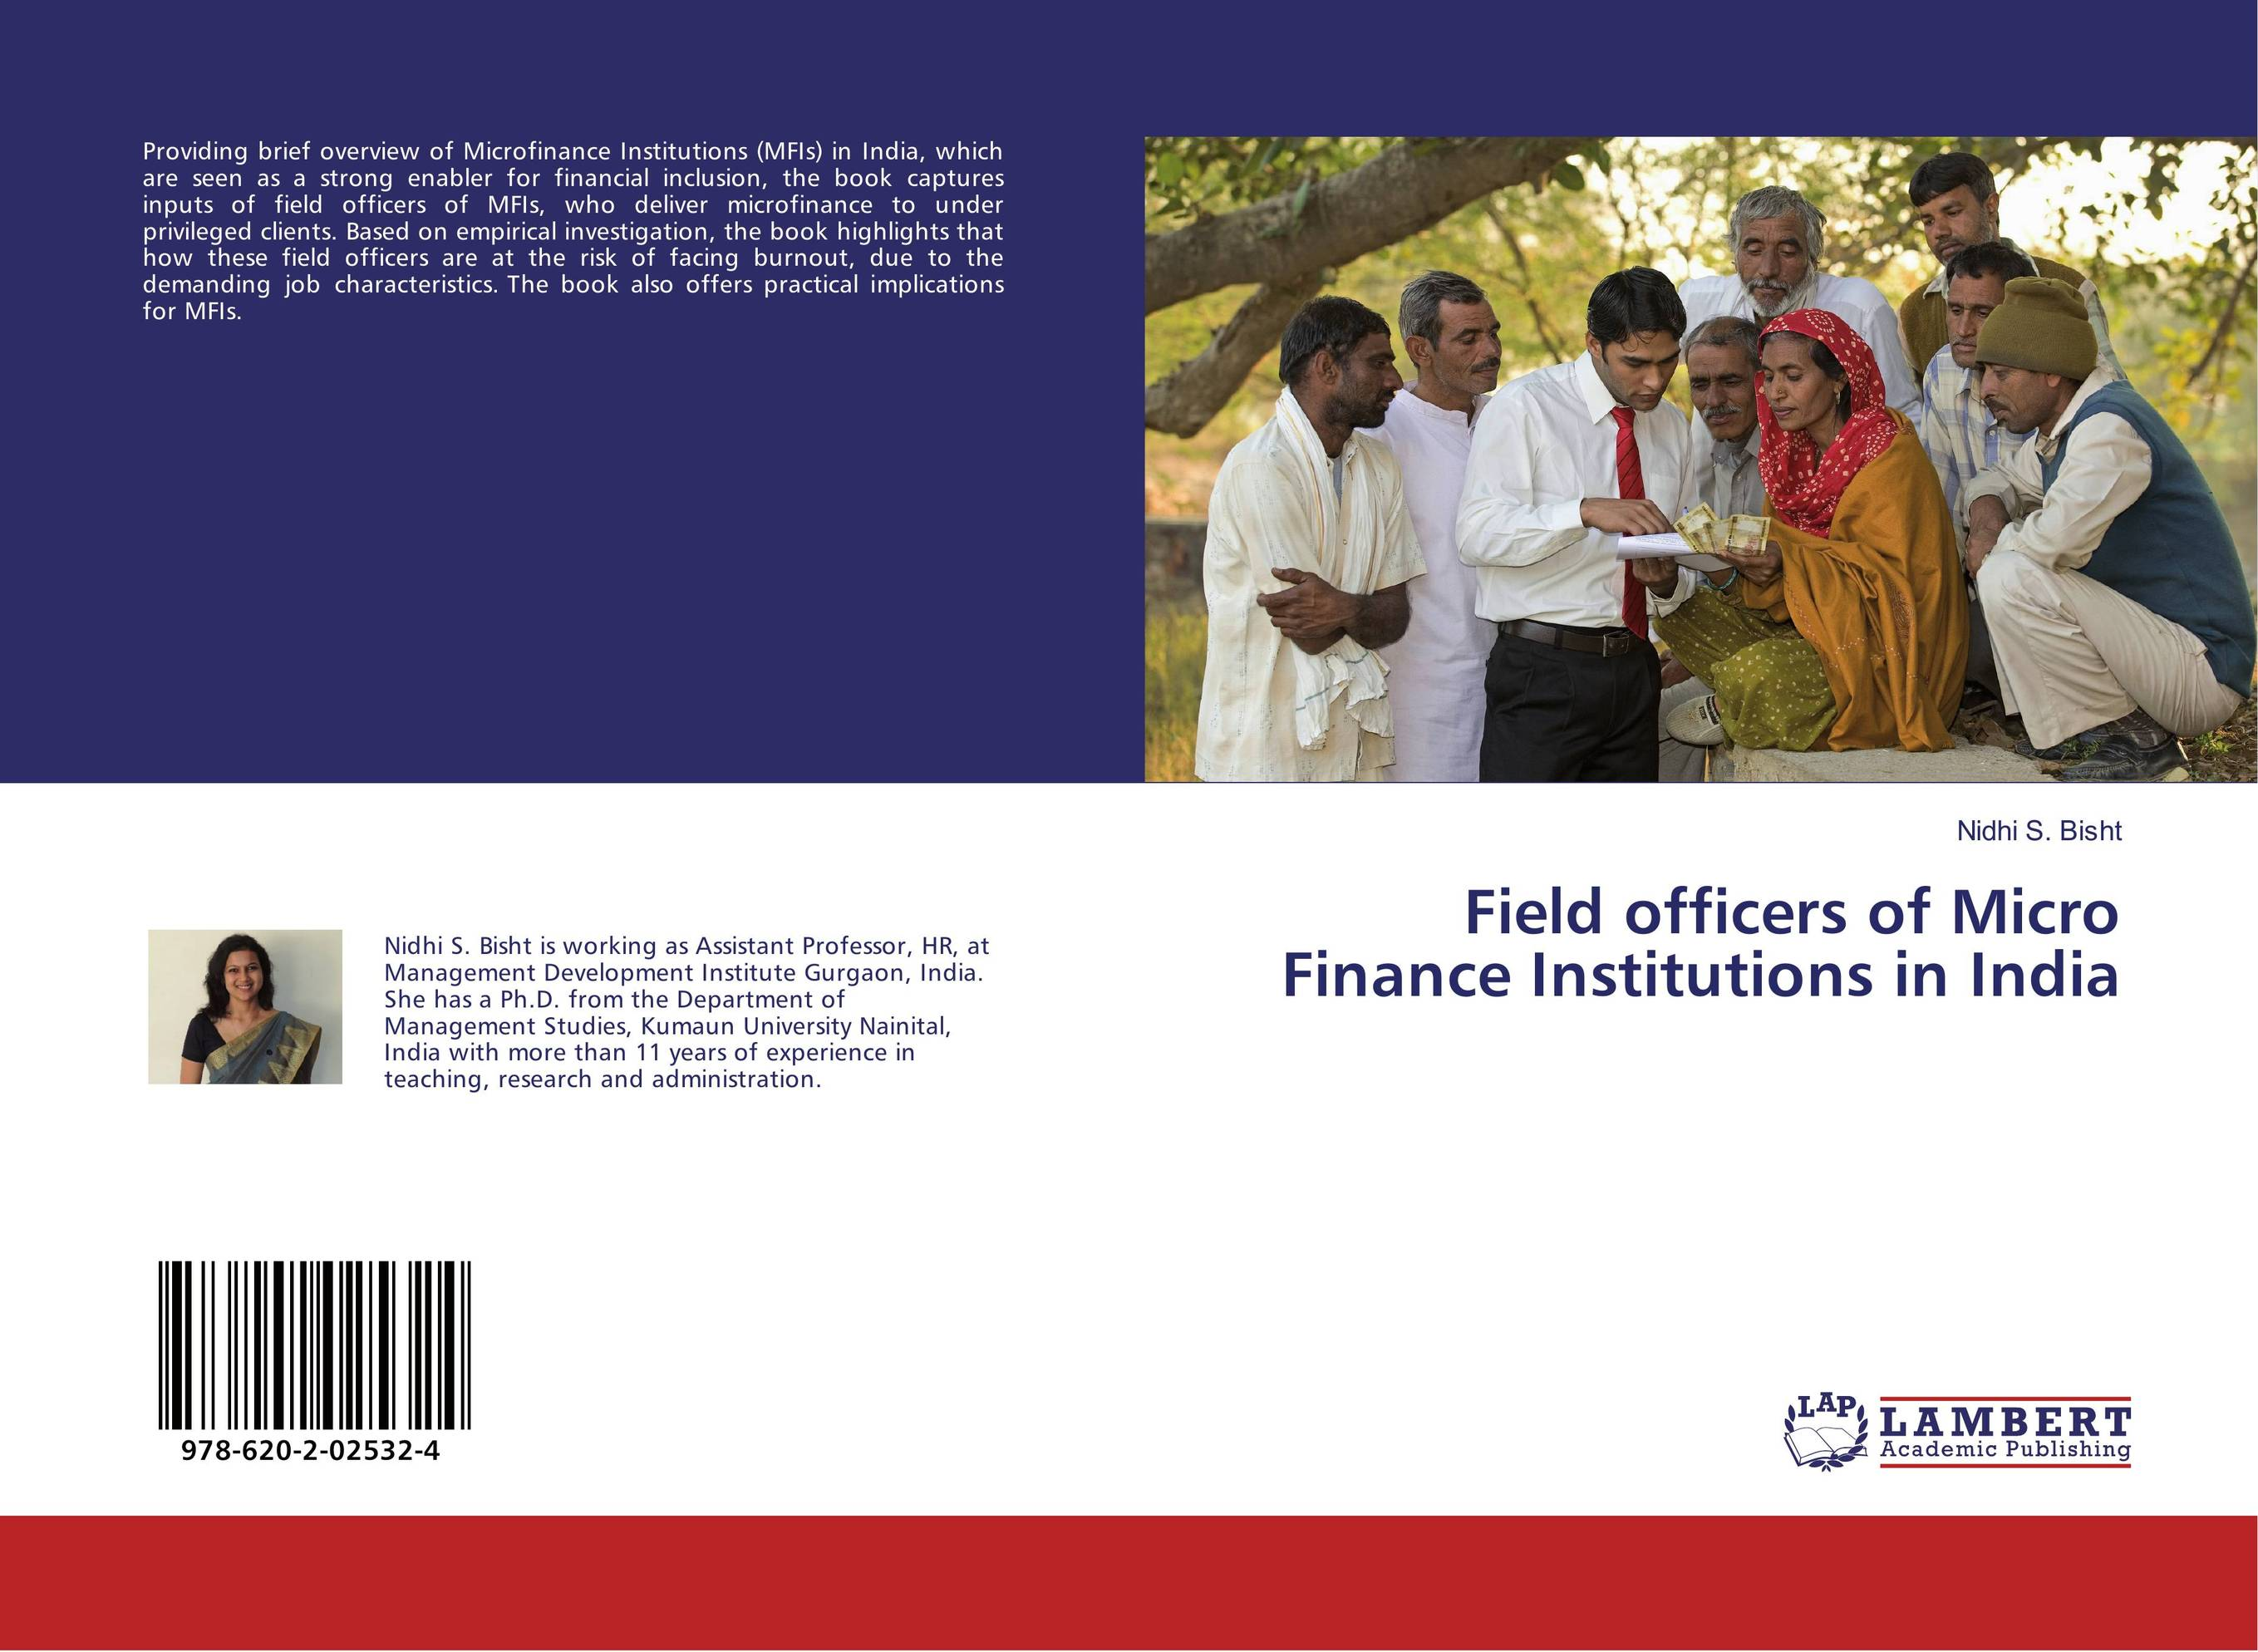 thesis on microfinance in india Micro finance in india is approaching a historic 'tipping point' that could lead to a massive poverty reduction in the next five to ten years - grameen foundation us ( in 2005.